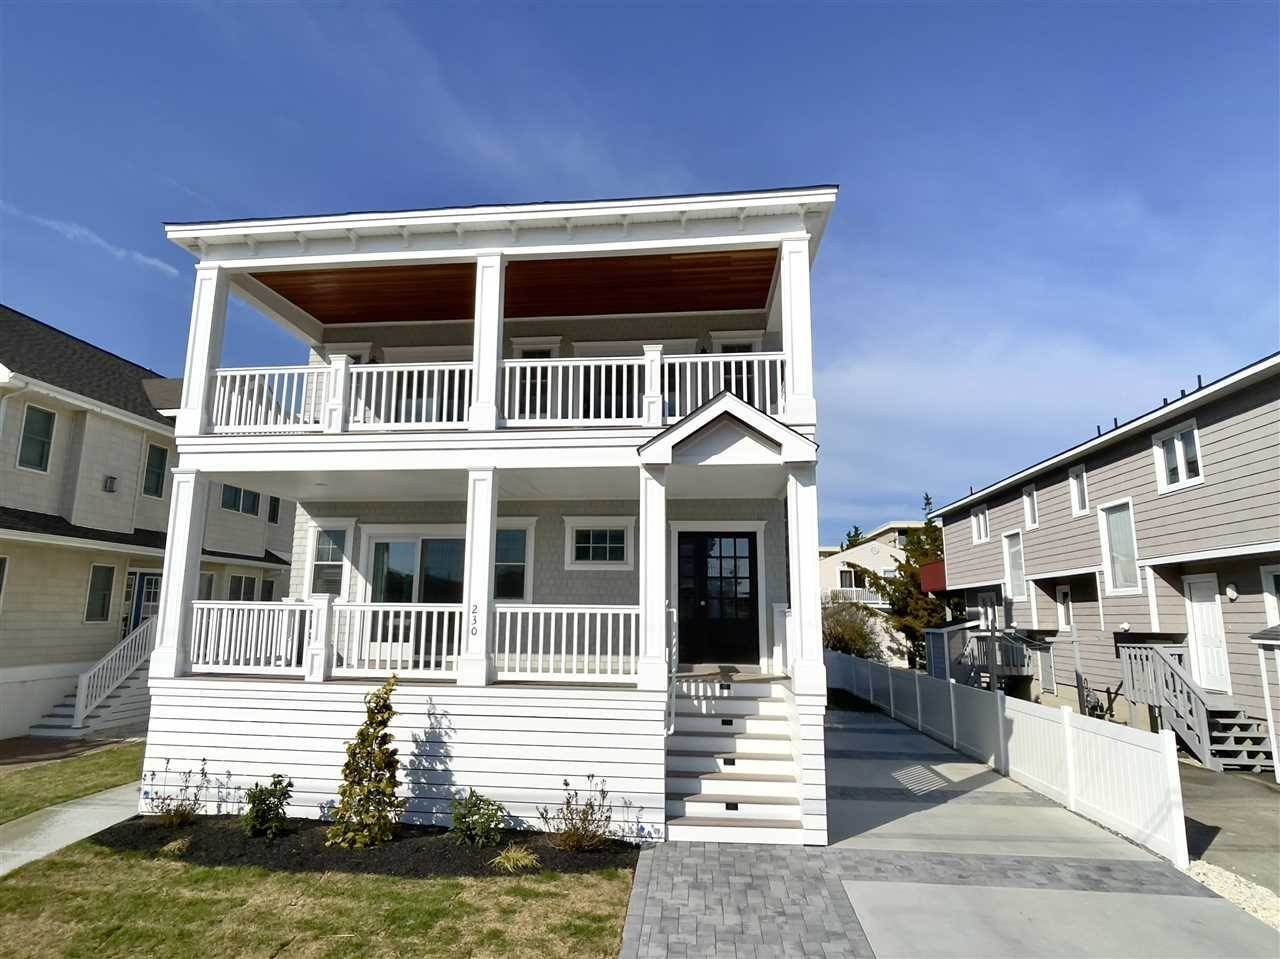 Single Family Homes for Sale at 230 82nd Street Stone Harbor, New Jersey 08247 United States